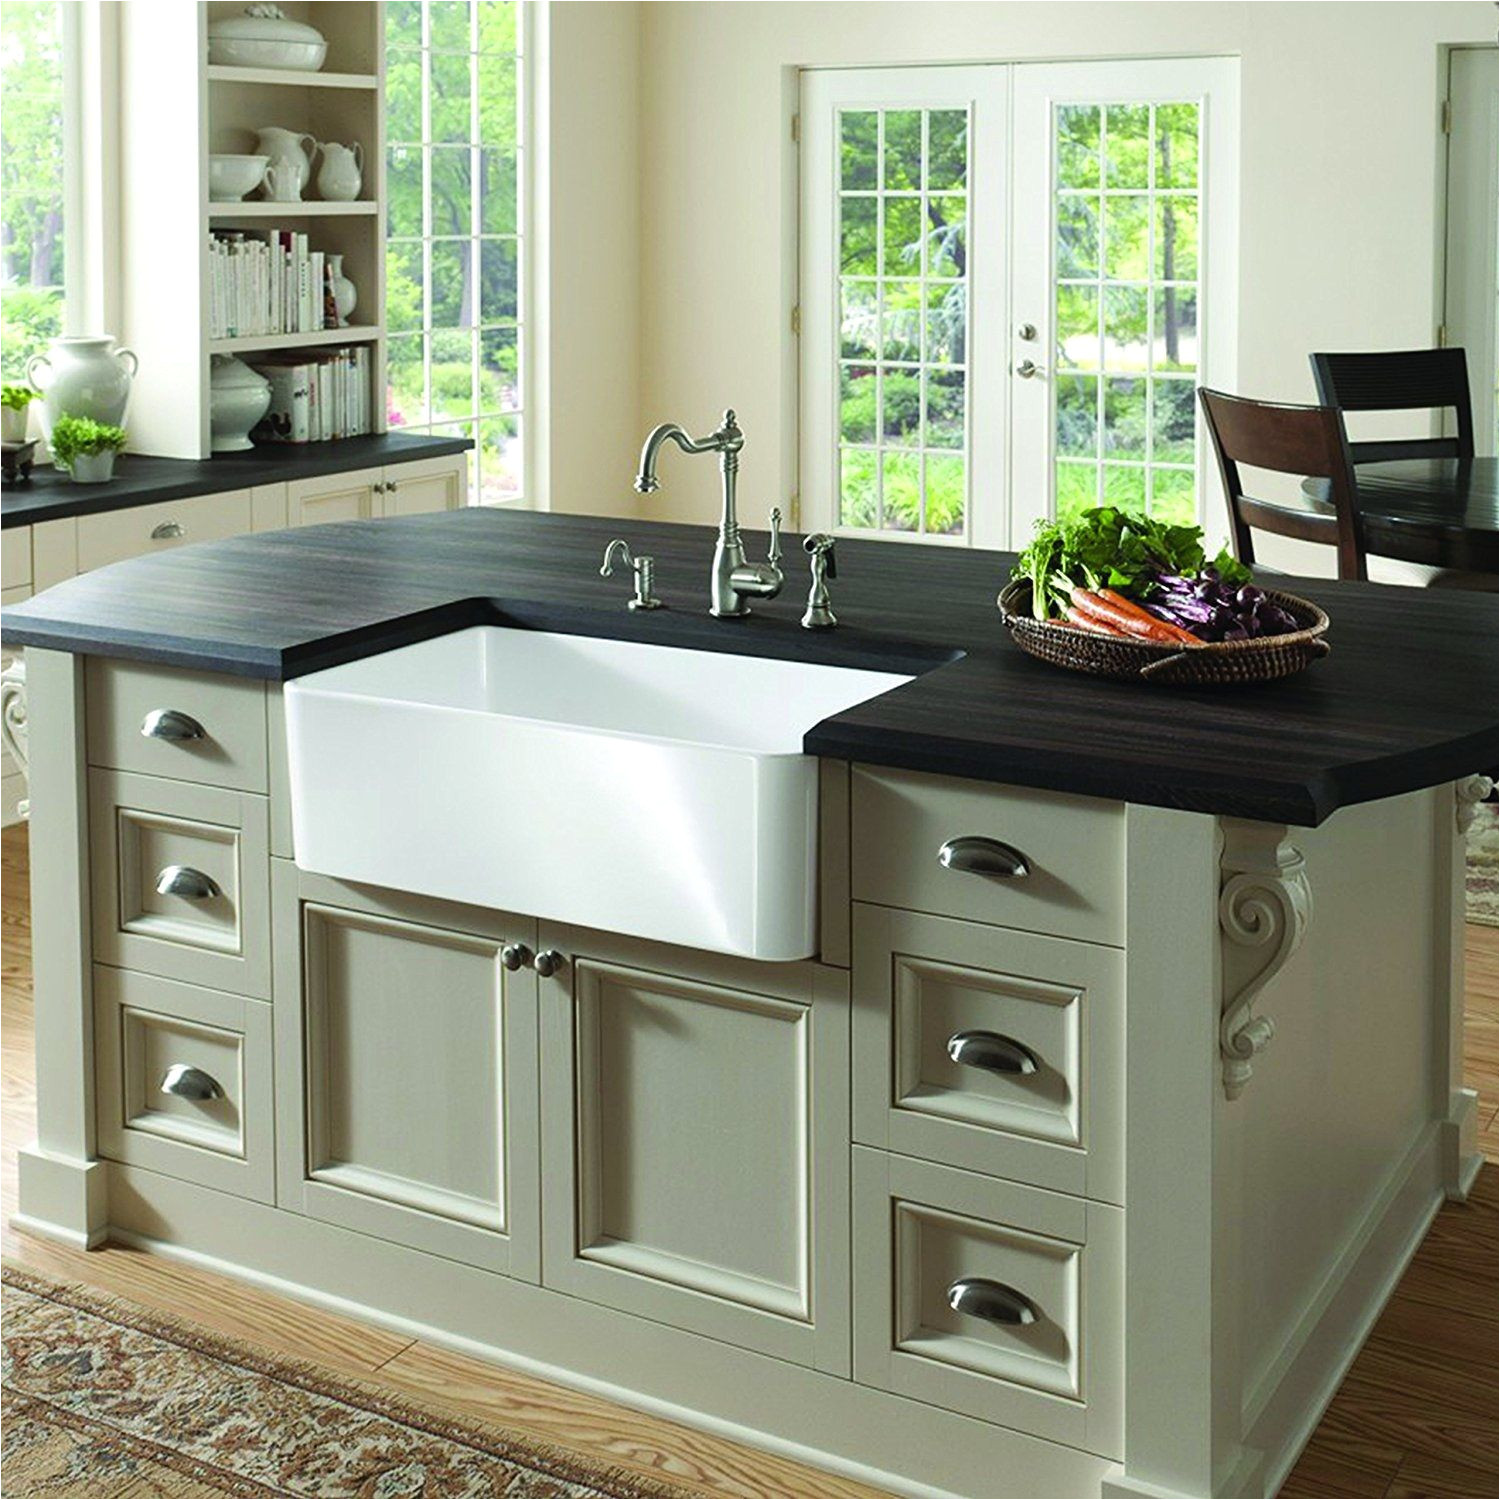 farmhouse sinks list discover the best farmhouse kitchen sinks for your home we love coastal farmhouse sinks because they can make your farm kitchen look